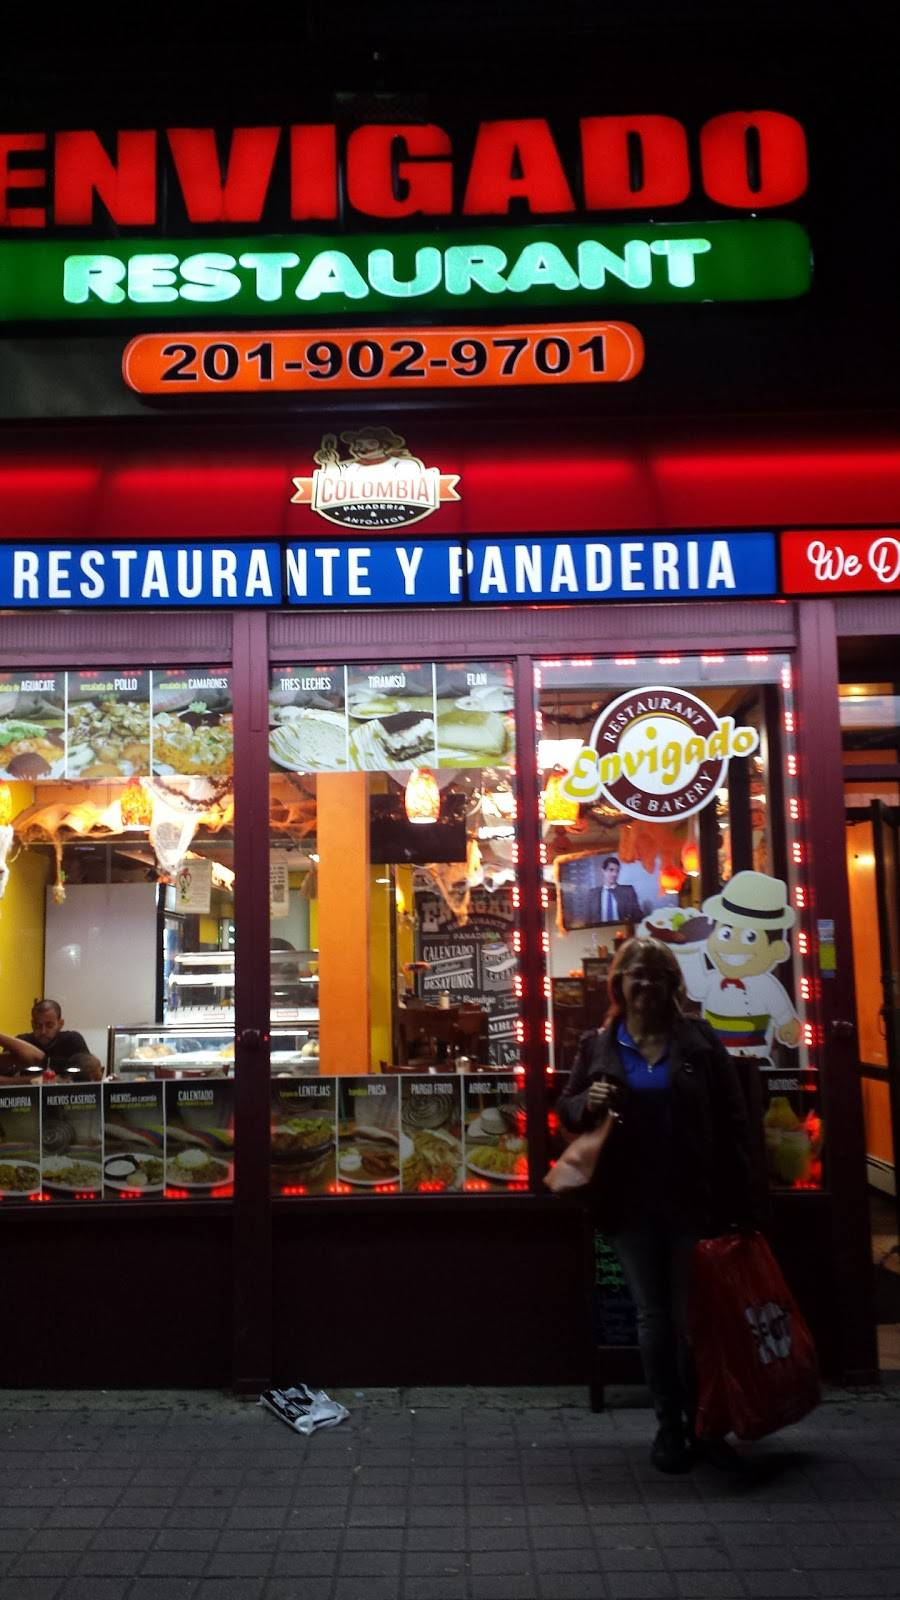 Envigado Restaurant & Bakery | cafe | 5114 Bergenline Ave, West New York, NJ 07093, USA | 2019029701 OR +1 201-902-9701